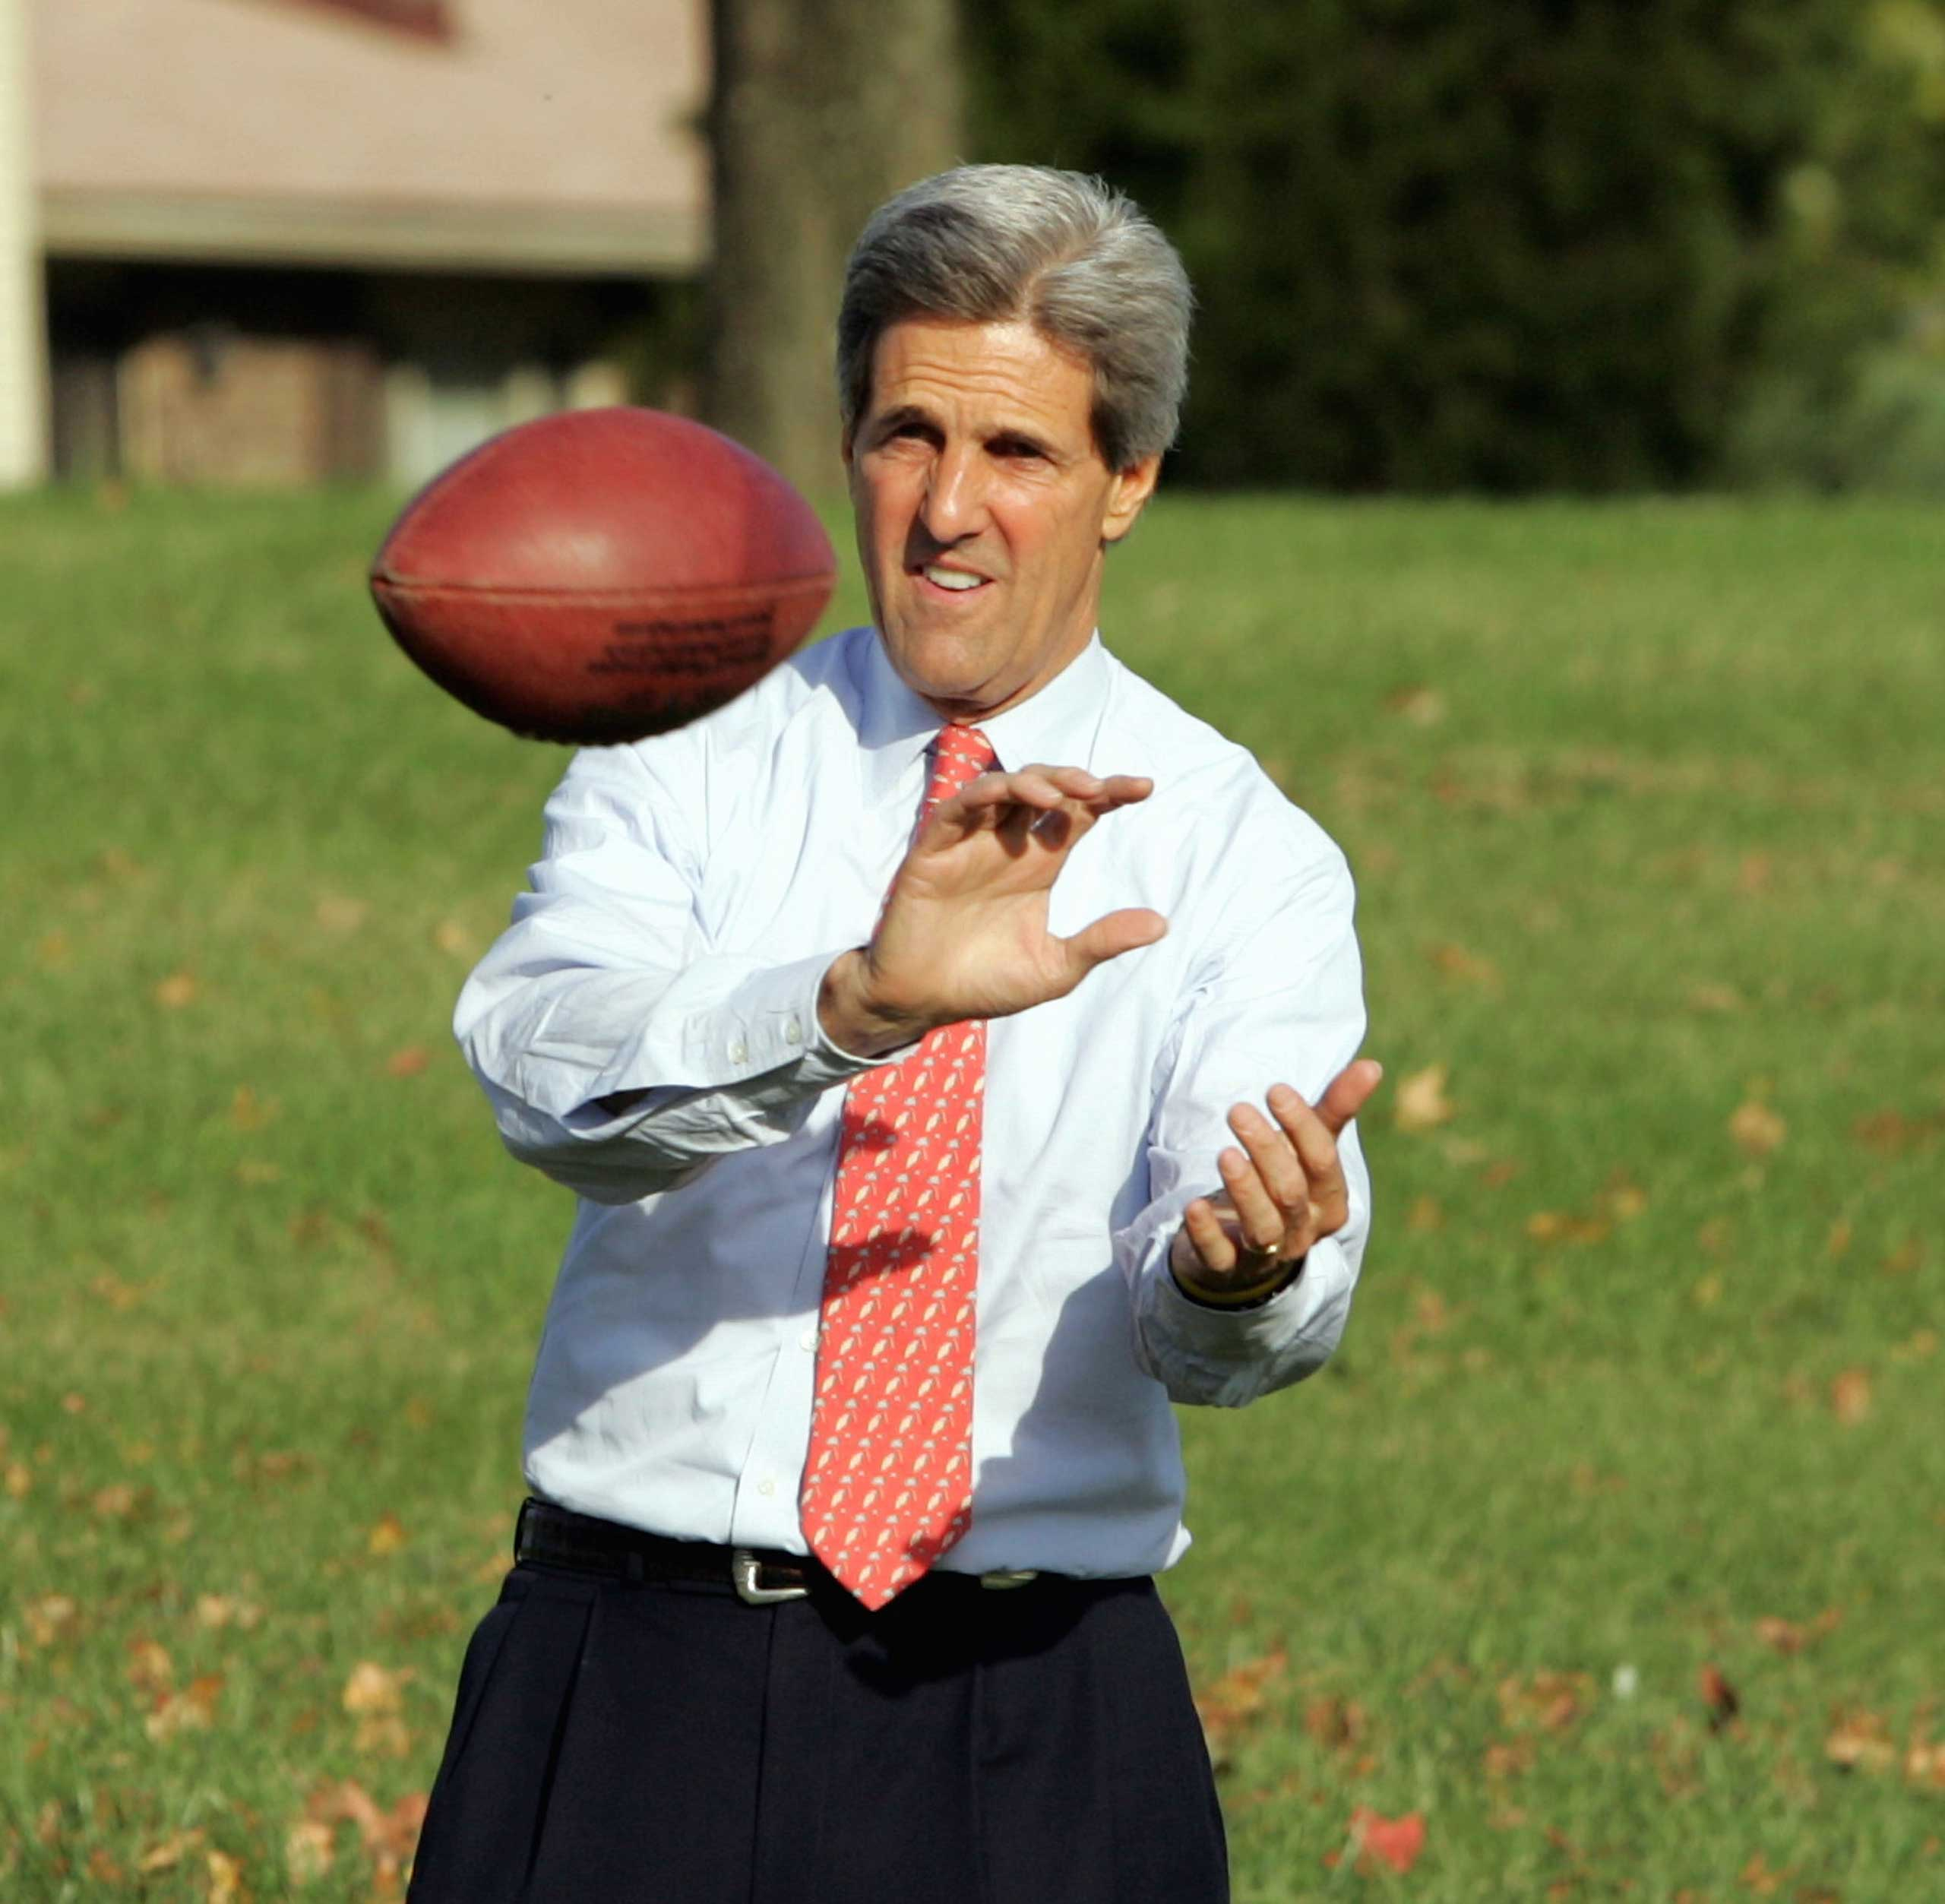 Democratic presidential candidate John Kerry (D-MA) plays football with his staff in Dayton, Ohio on Oct. 31, 2004.